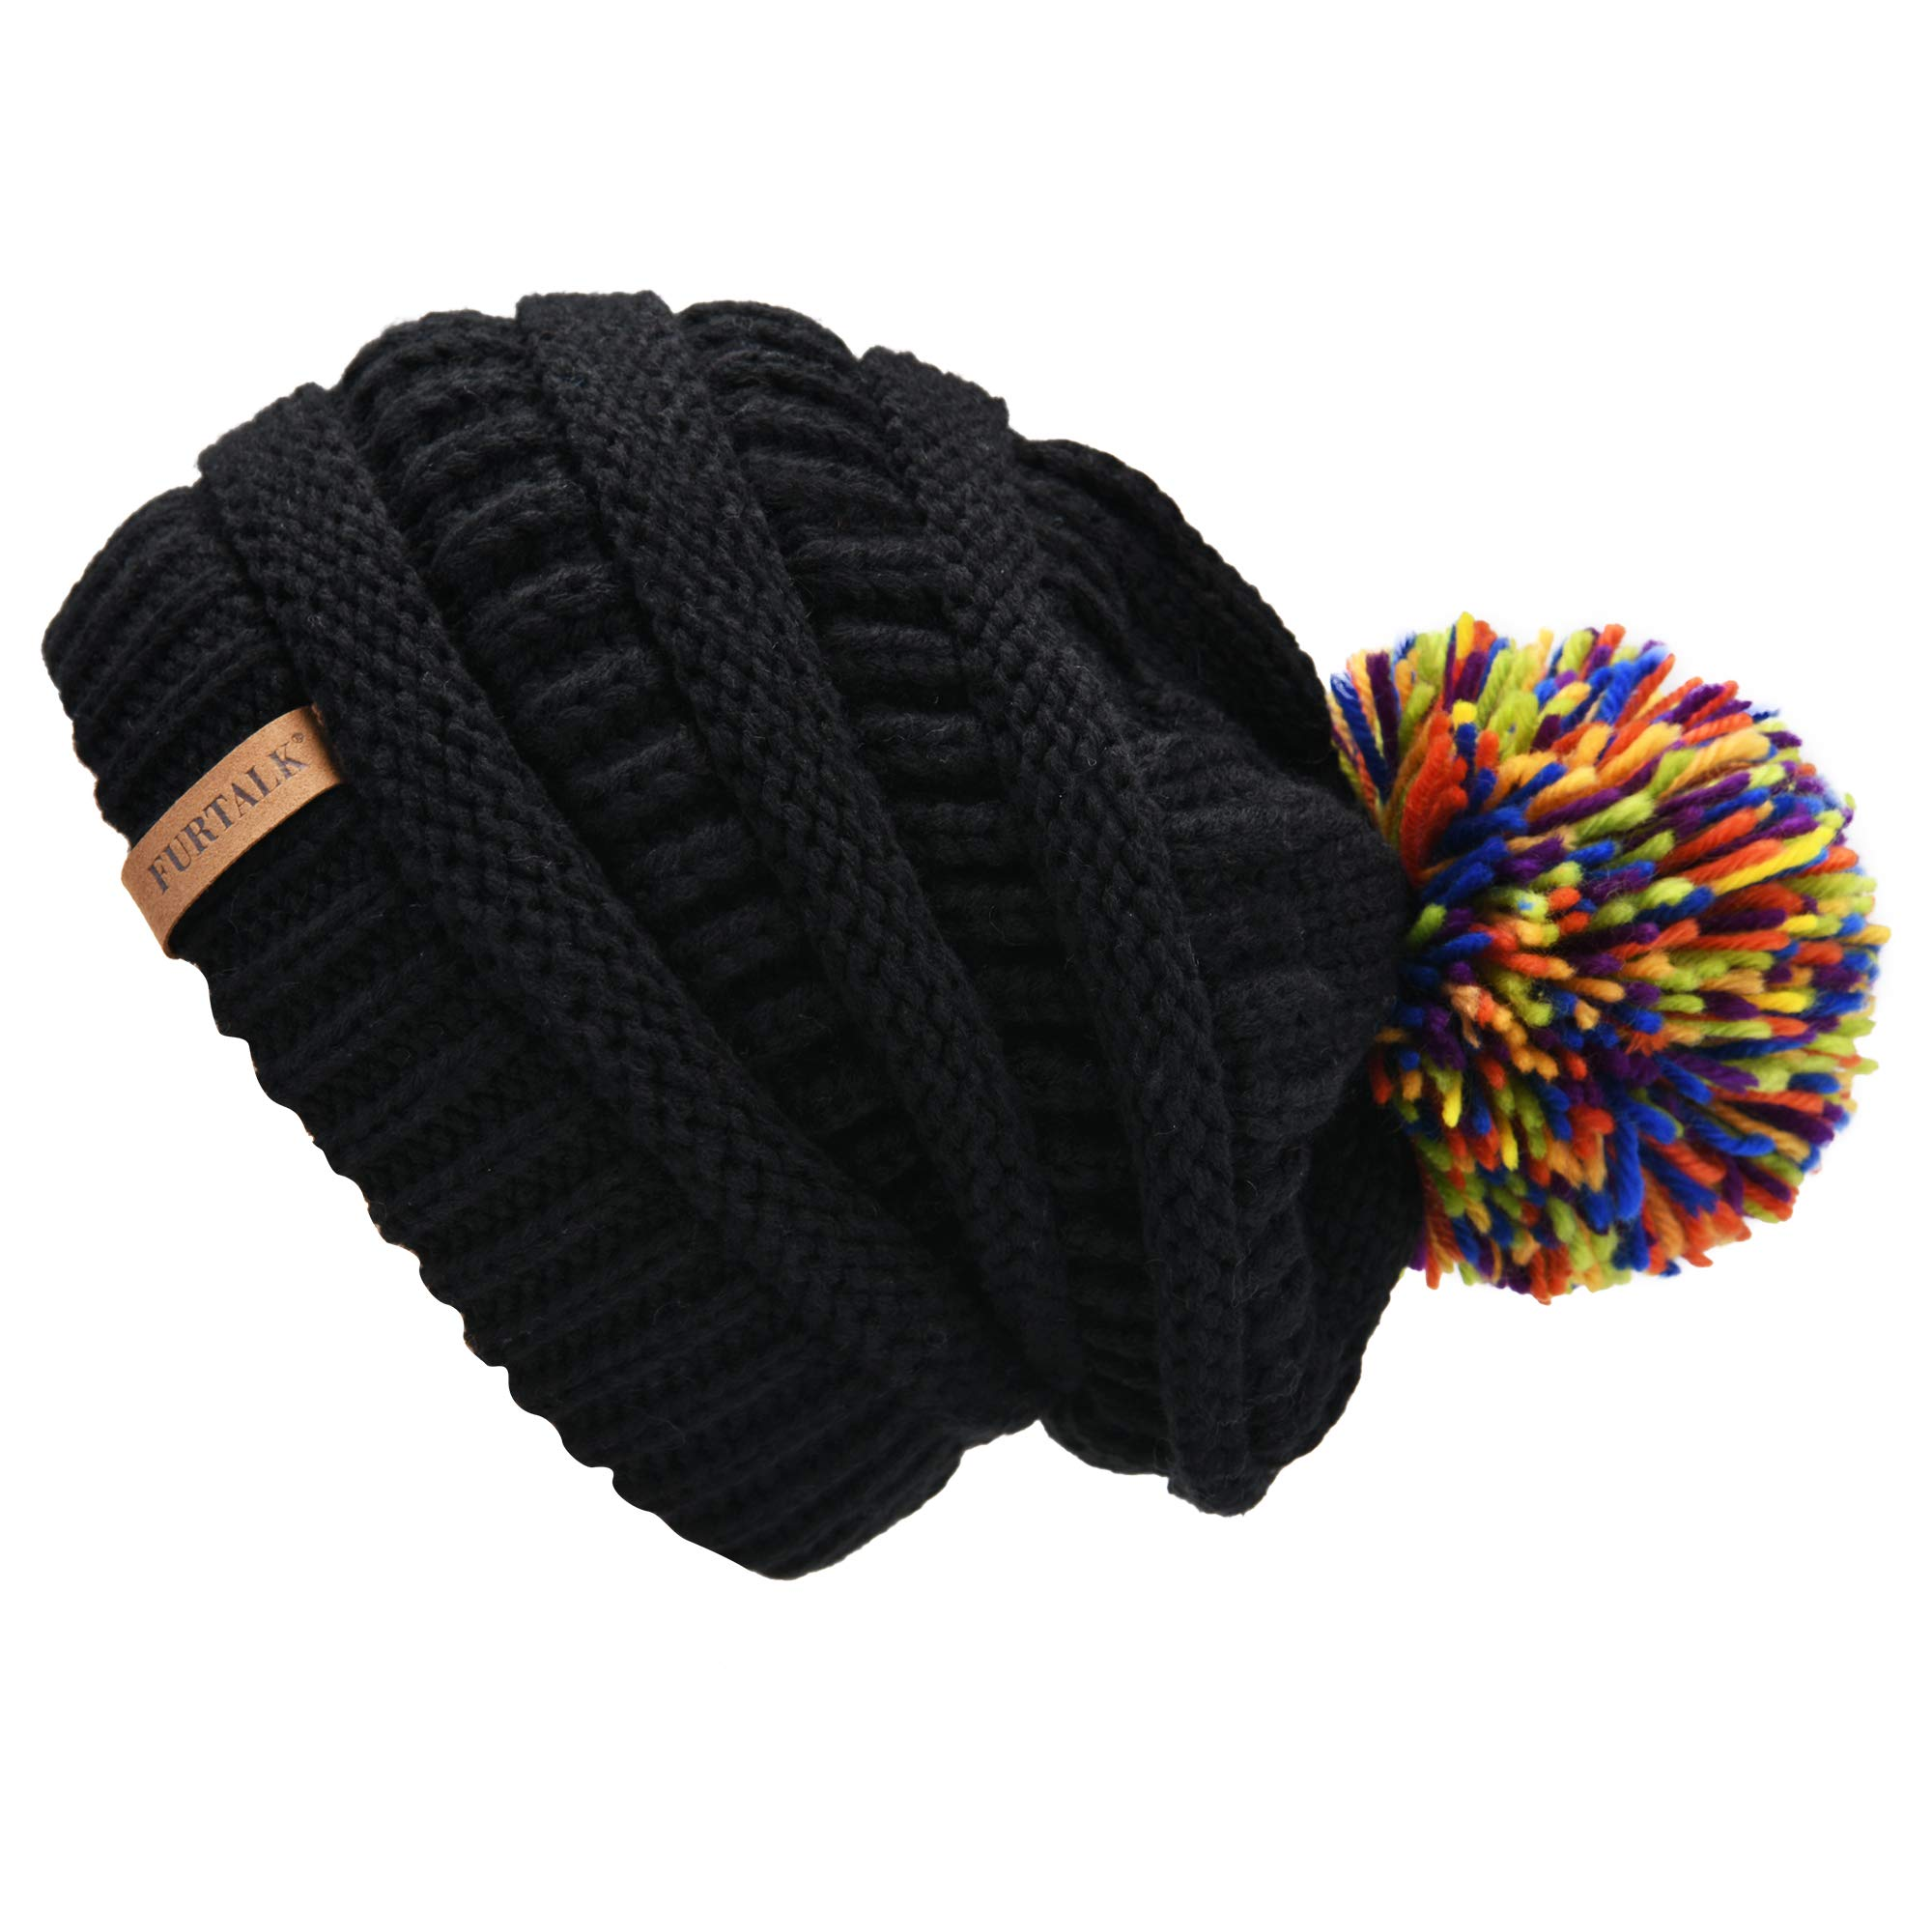 FURTALK Womens Slouchy Winter Knit Beanie Hats Chunky Hat Bobble Hat Ski Cap (One Size, Black with Mixed Knit Pom)